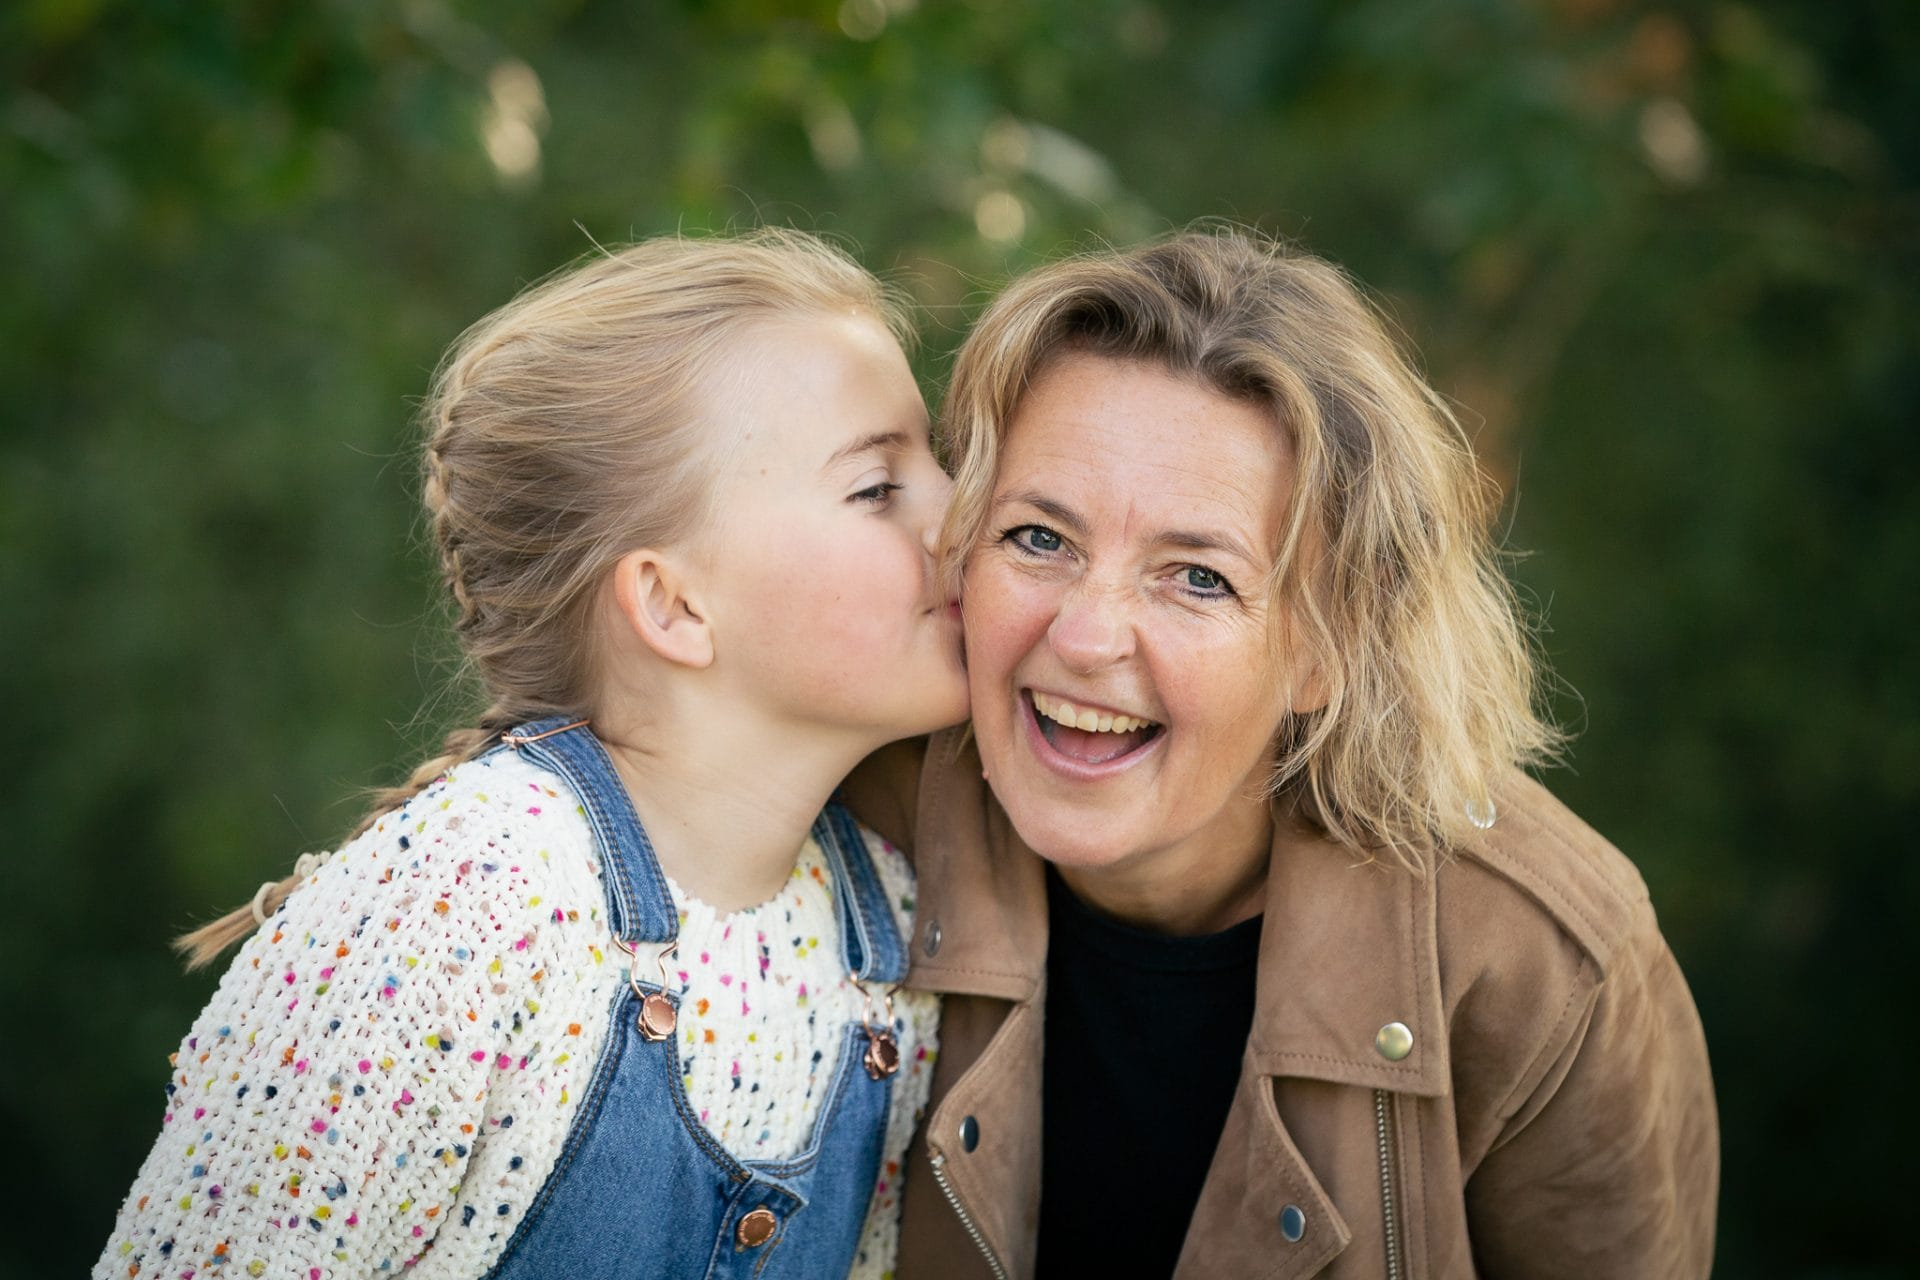 Get In The Picture - photo of mum & daughter